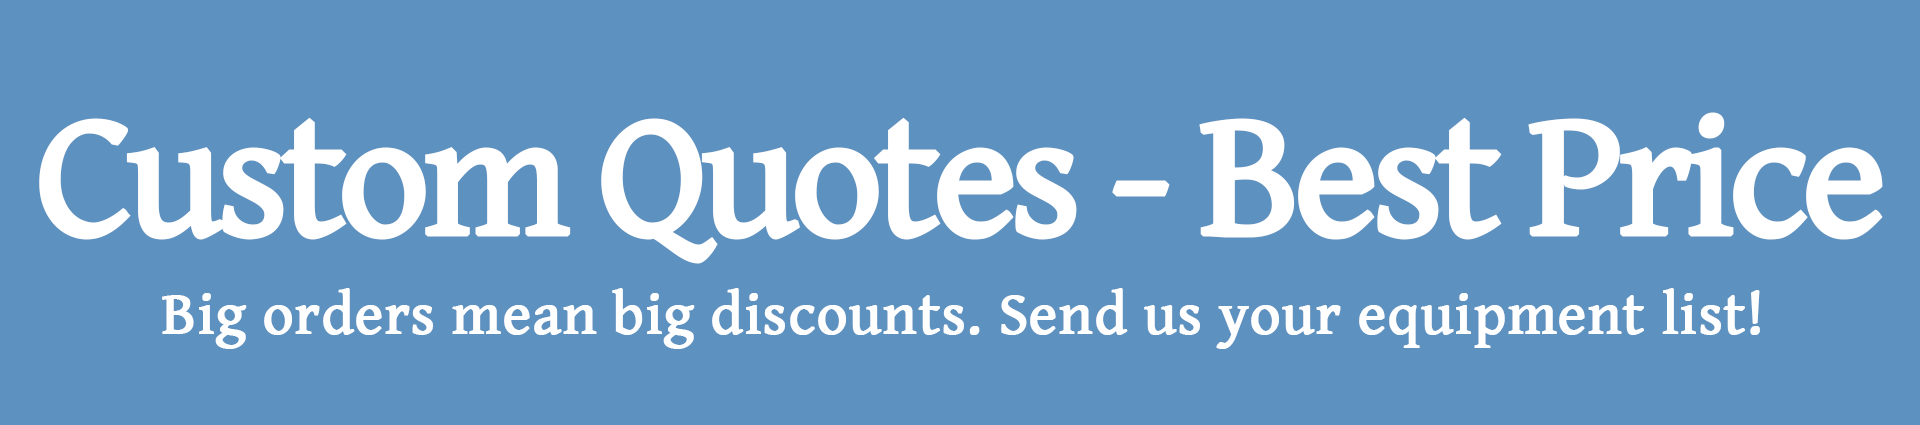 Custom Quotes Banner